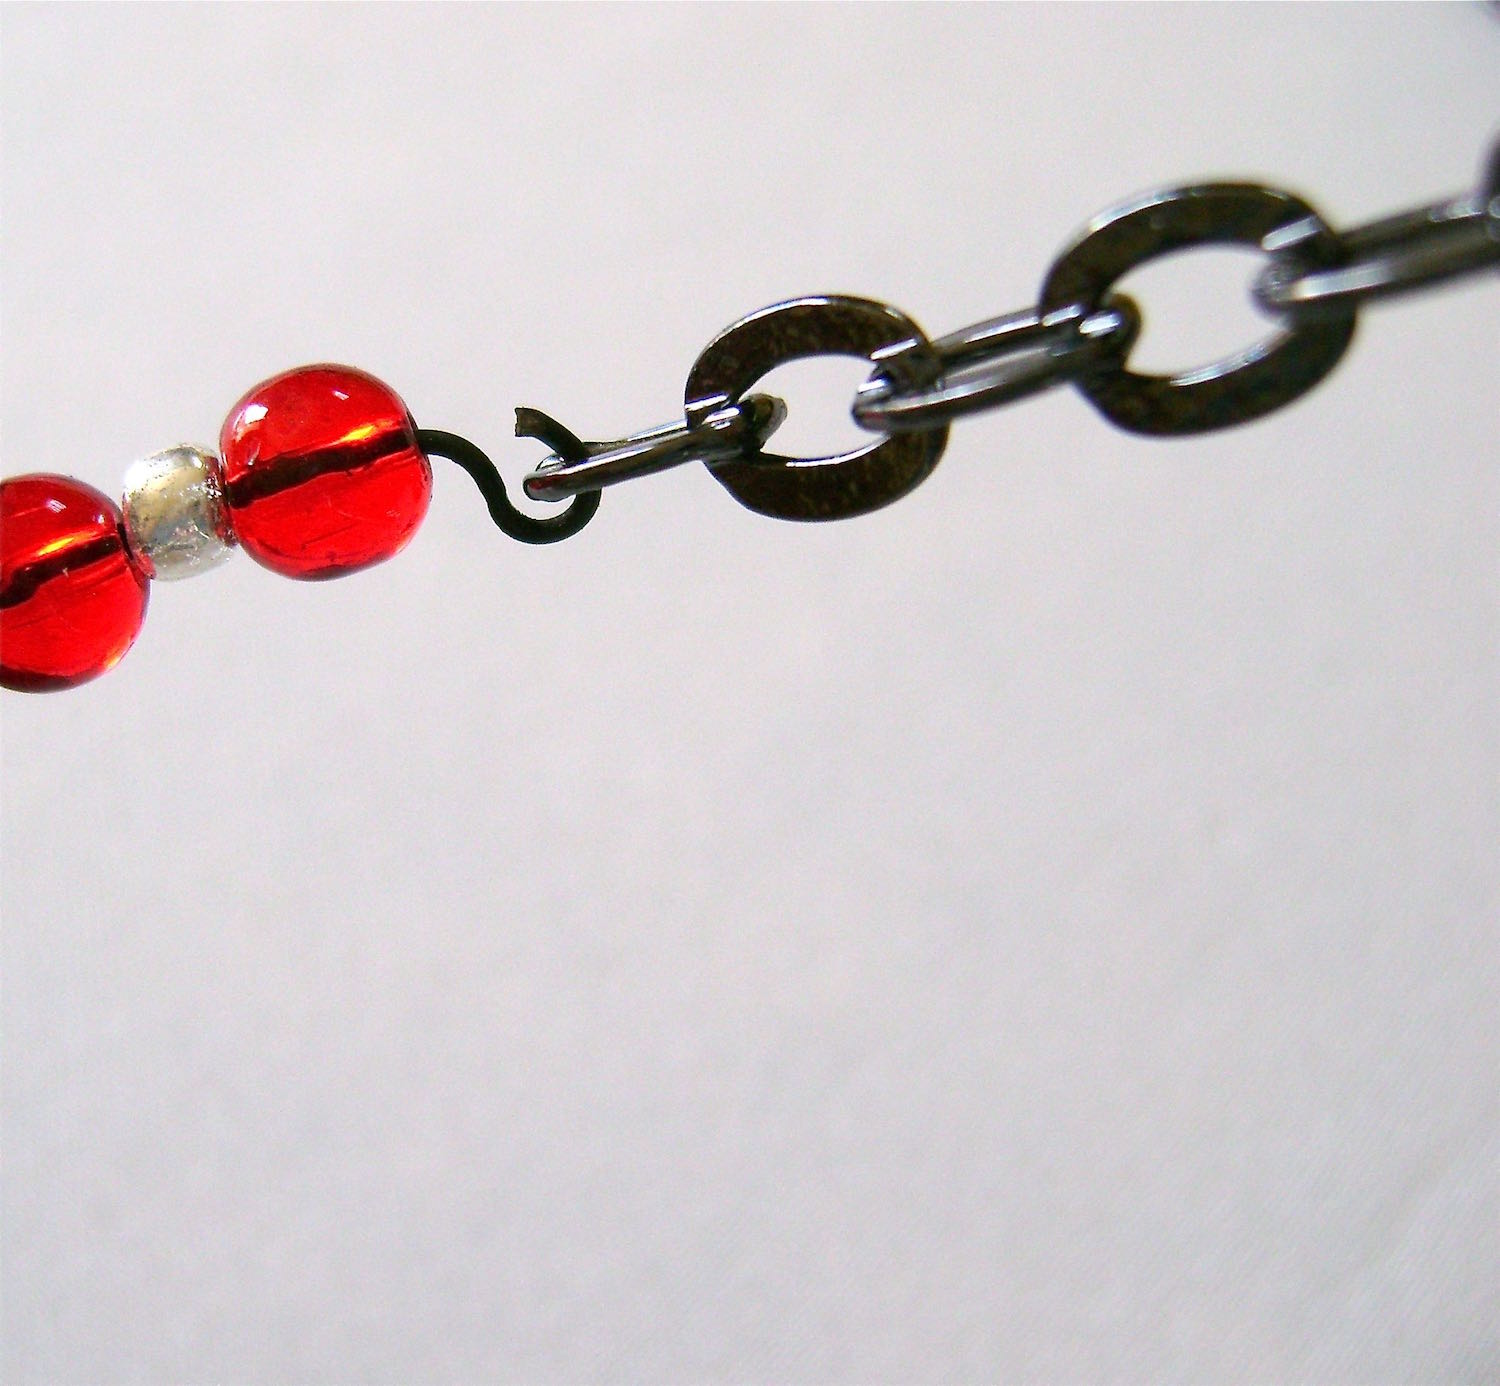 step 23 - Insert the open loops of the bead sections into the end links on the chain sections and close the loops.